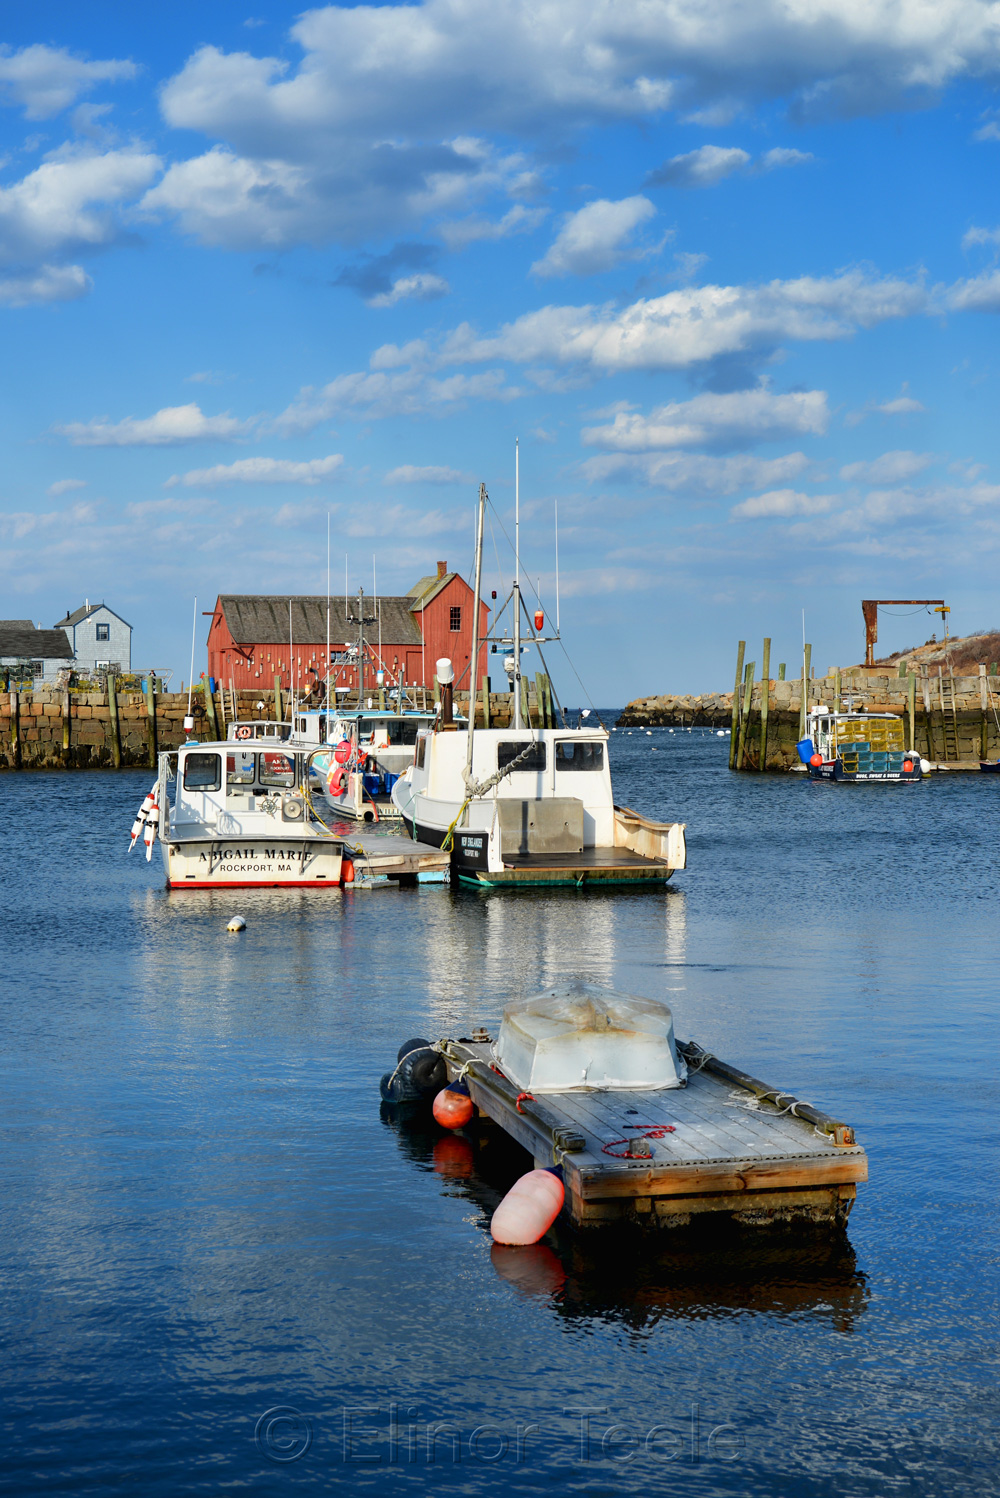 Motif #1 in April 2019, Rockport MA 1